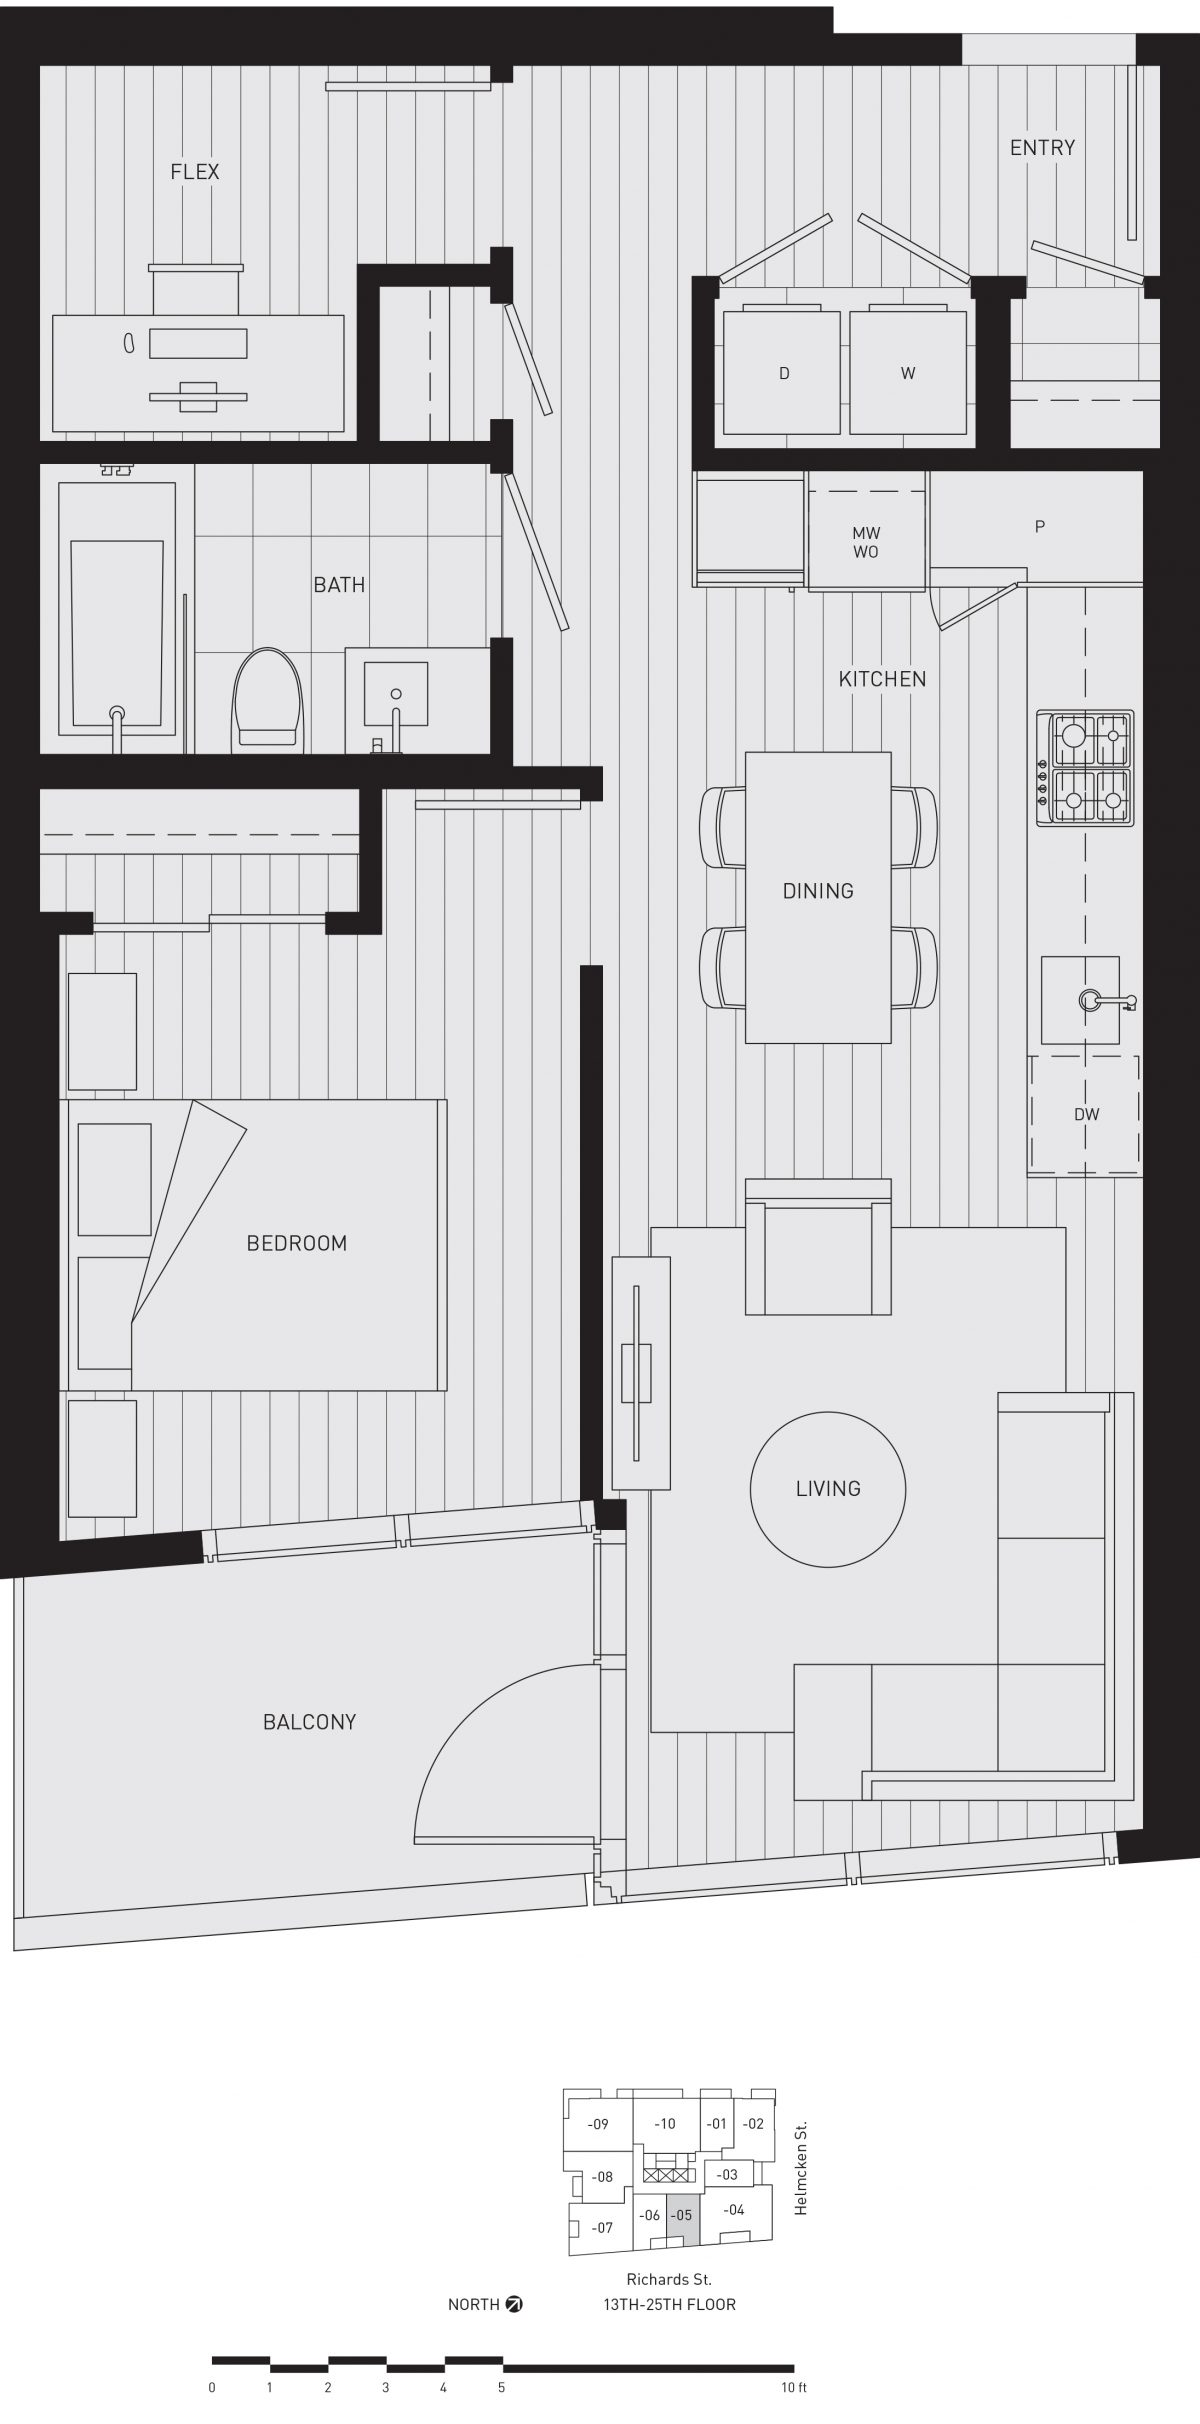 8x On The Park Live Life In Vancouver Bc 1000 Ideas About Electronic Circuit Pinterest Diagram Floorplan